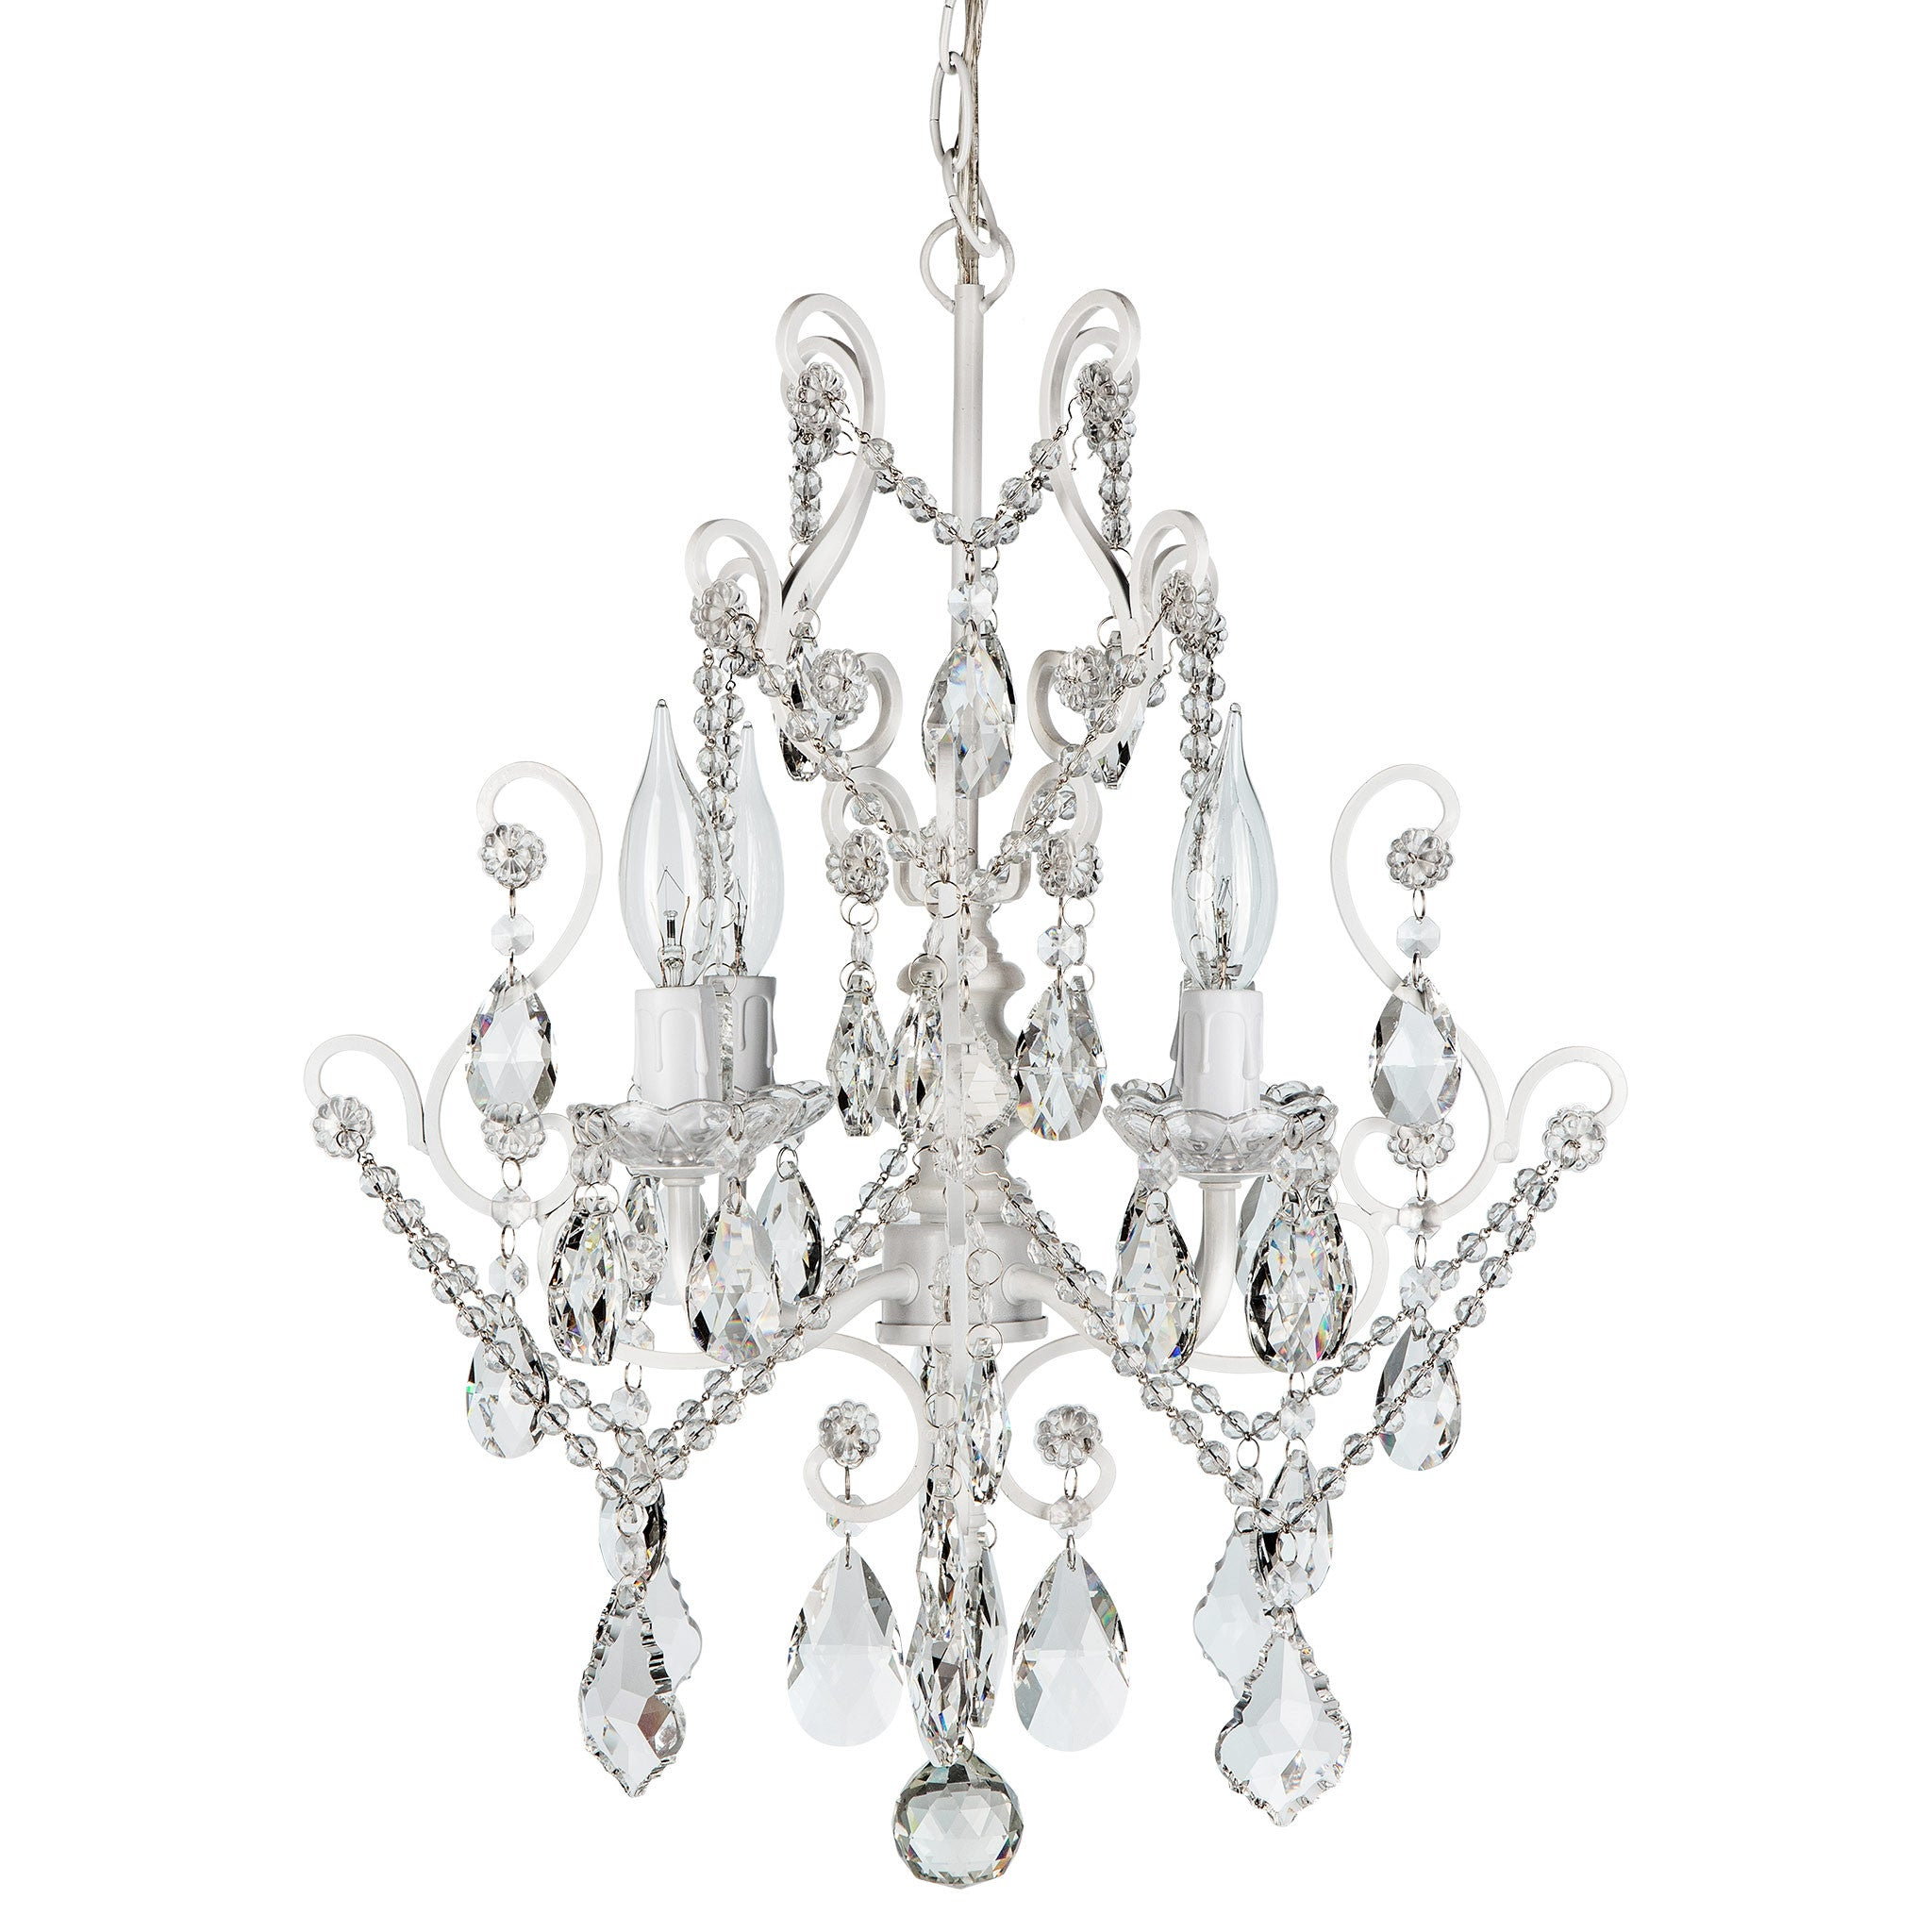 Crystal chandeliers amalfi dcor amalfi decor amalfi decor theresa 4 light white crystal pendant chandelier arubaitofo Gallery